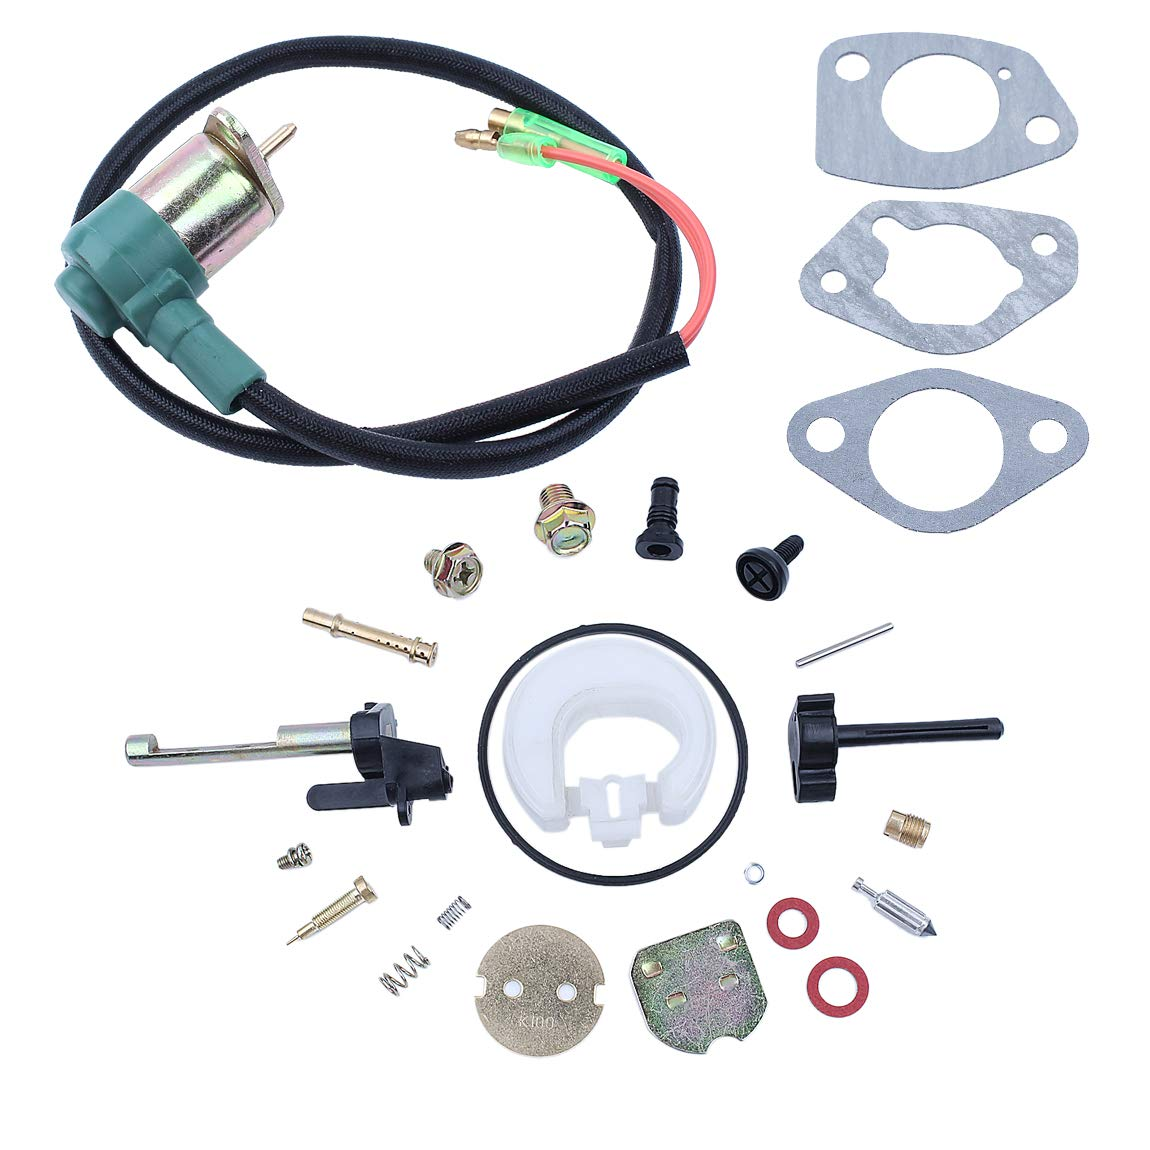 Carburetor Carb Solenoid Gasket Repair Kit Fit Honda GX390 GX 390 Chinese 188F 13HP Gasoline Engine Motor Generator